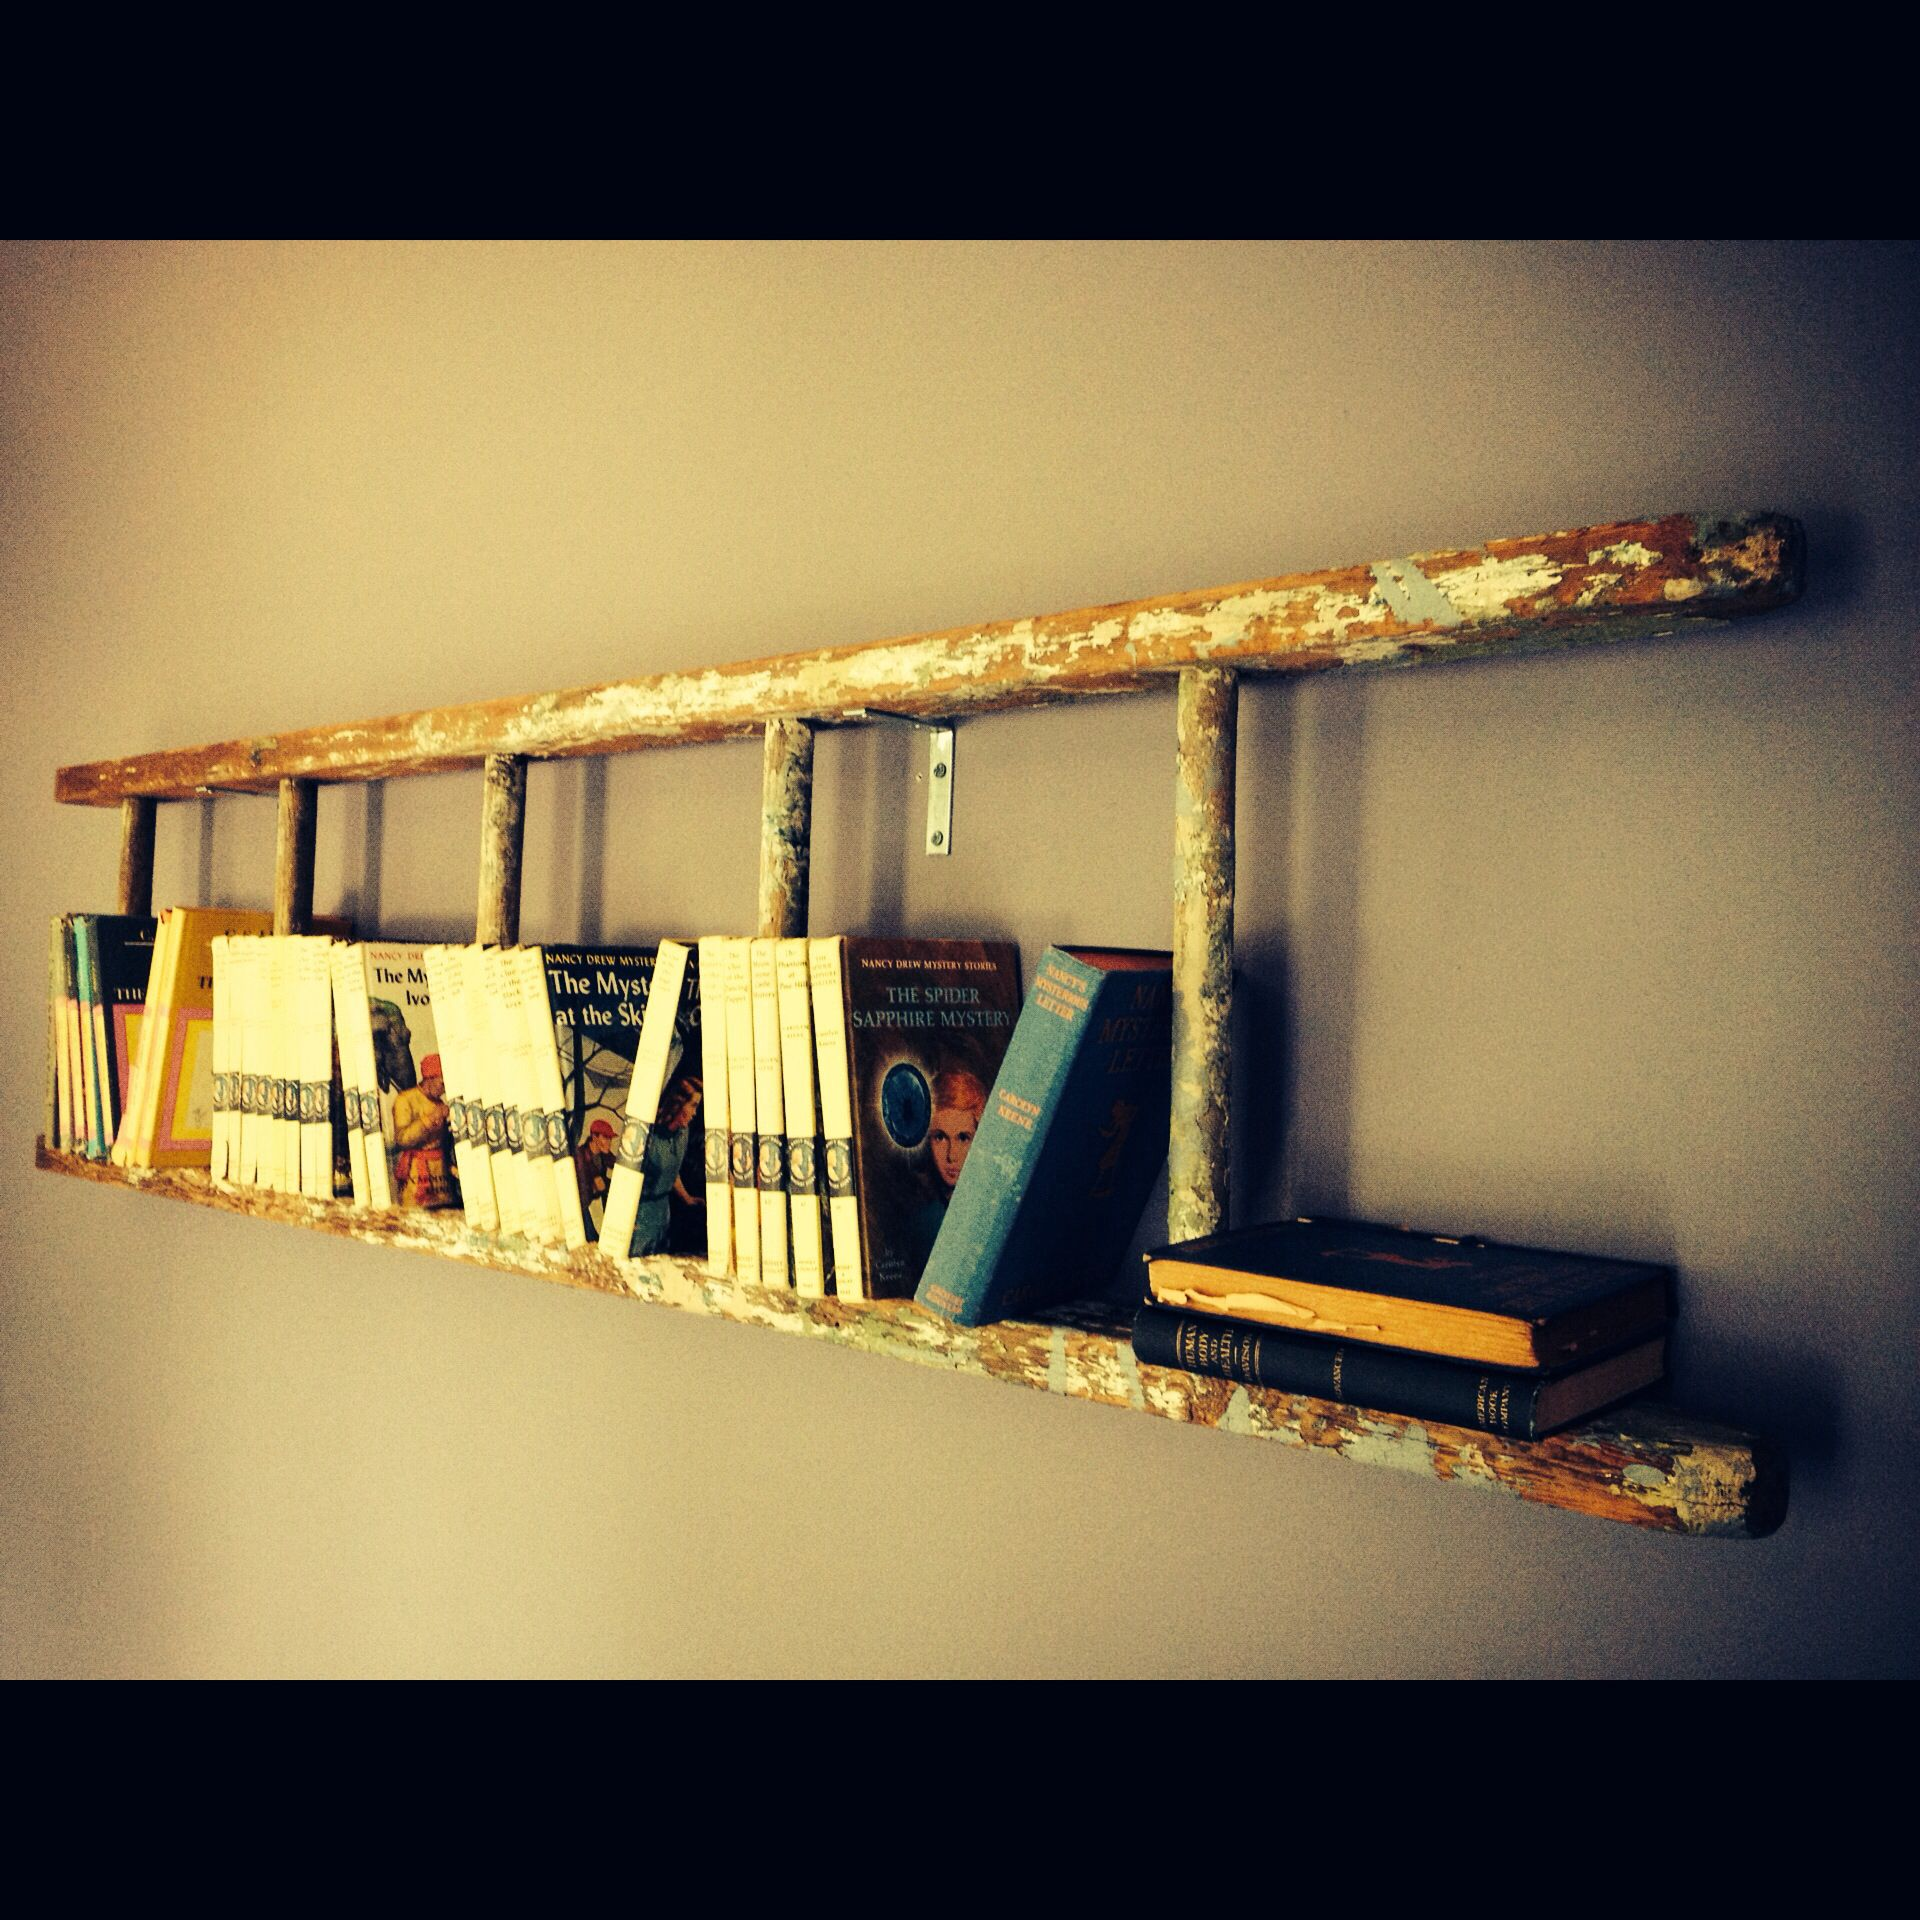 Ladder hung on wall for a bookshelf | Old Ladders | Pinterest ...